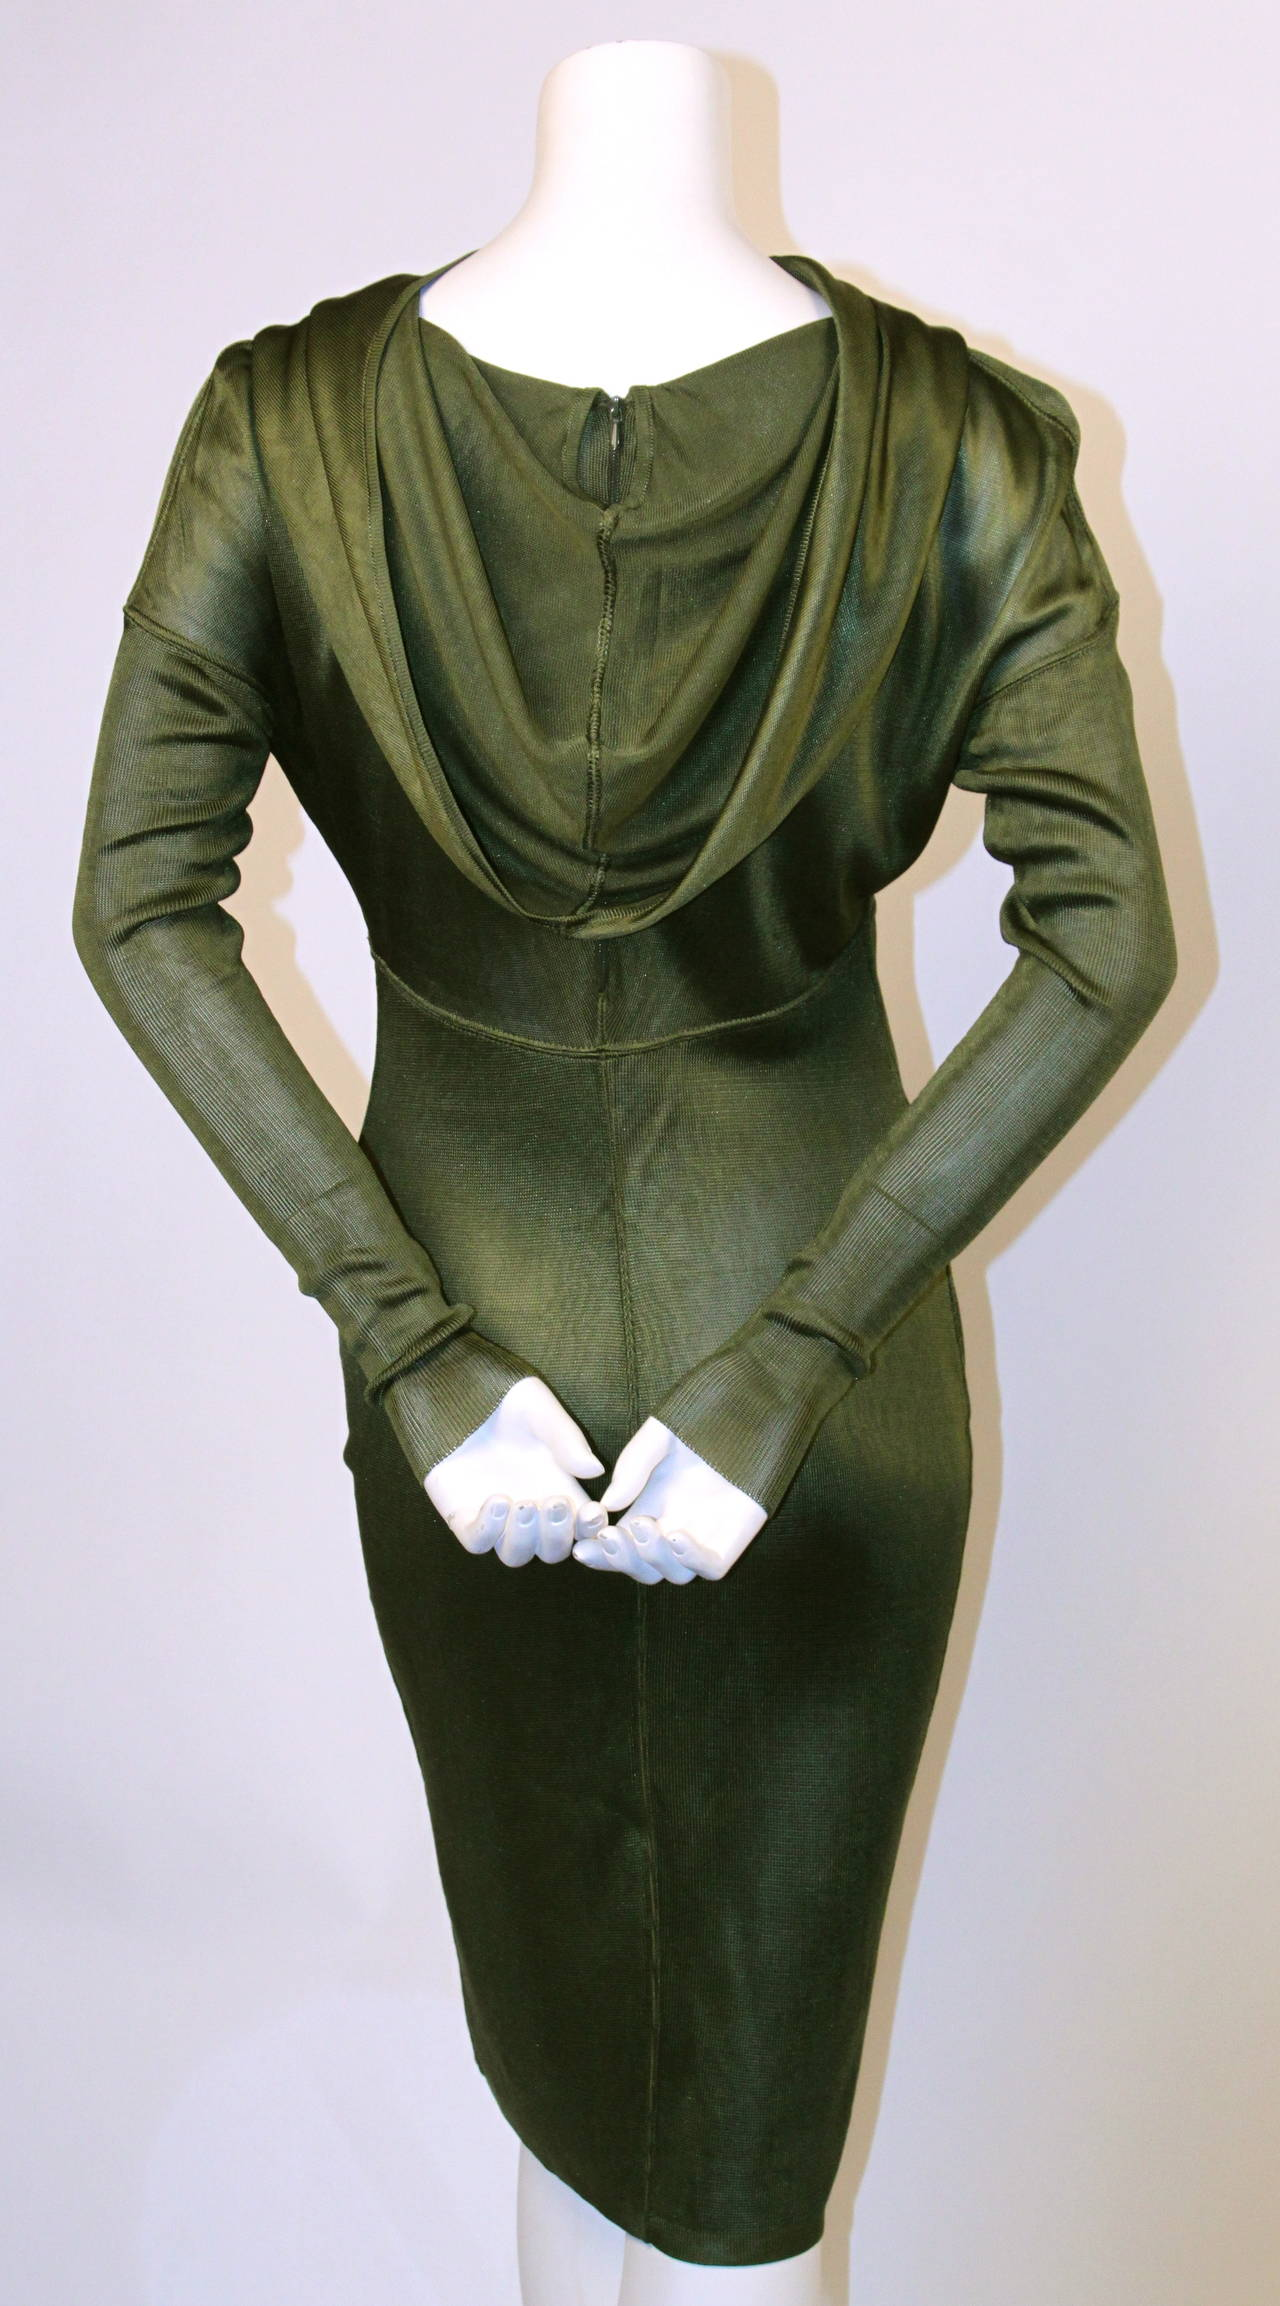 Very rare olive green hooded dress from Azzedine Alaia dating to 1986. 'Hood' can be draped for a more conventional look. Arms are made of a contrasting ribbed wool and are very long and narrow. Best suited for a size small or medium. Approximate